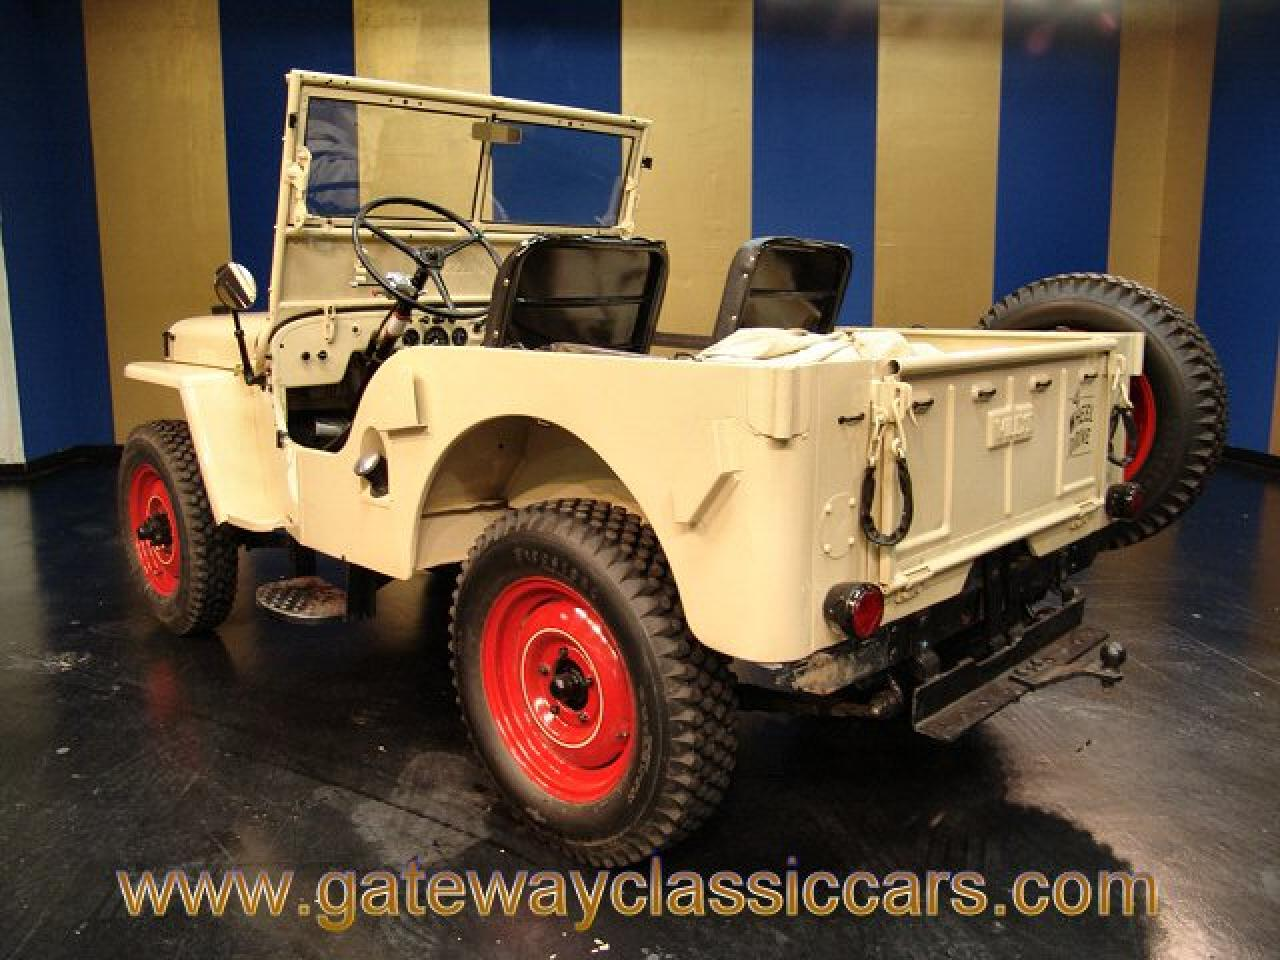 4592d 1946 willys cj2a gateway classic cars 4592 1947 Willys Jeep Wiring Diagram at readyjetset.co